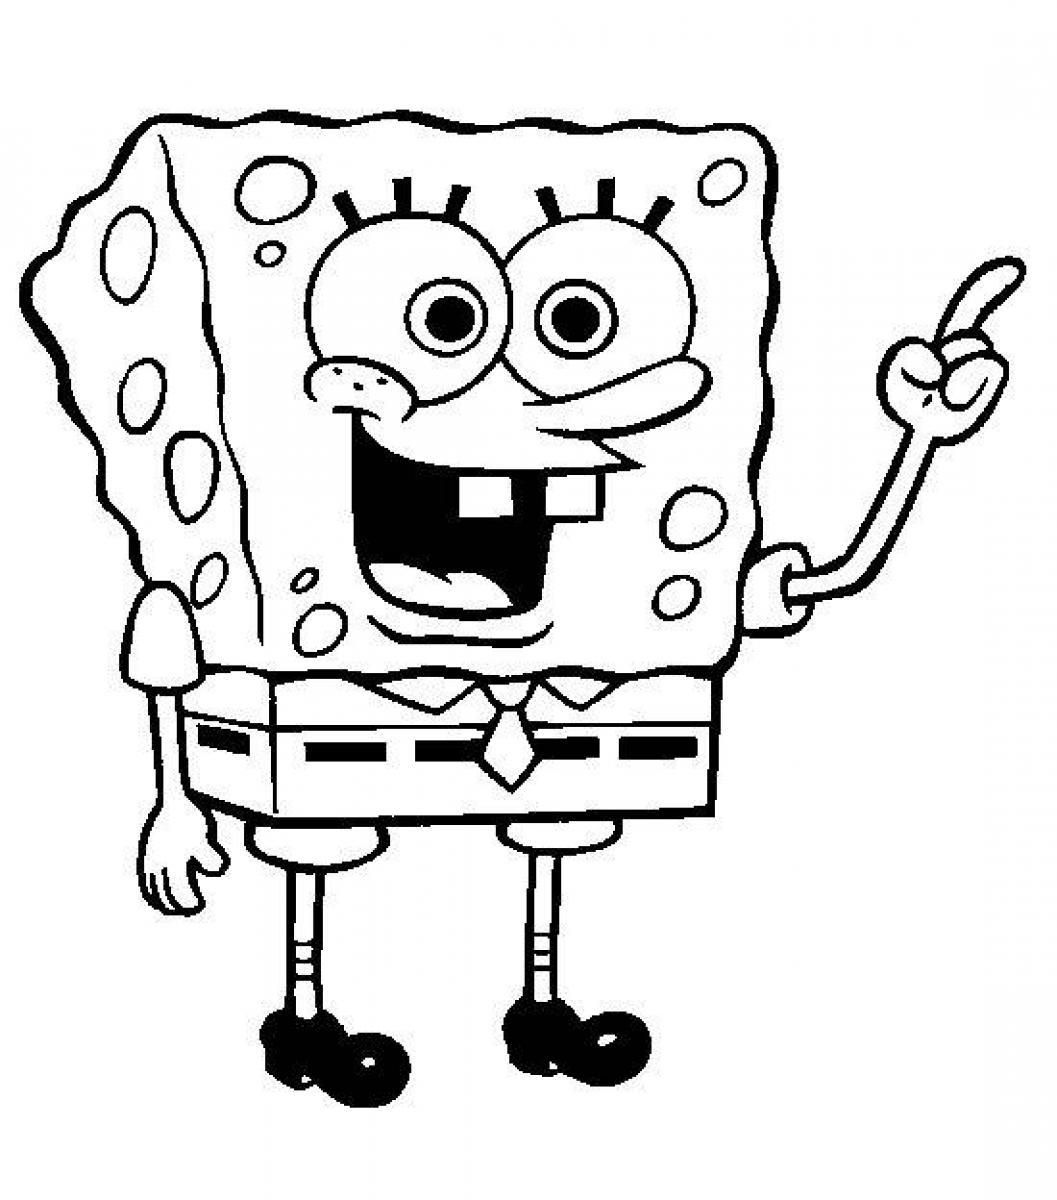 Coloring pages spongebob